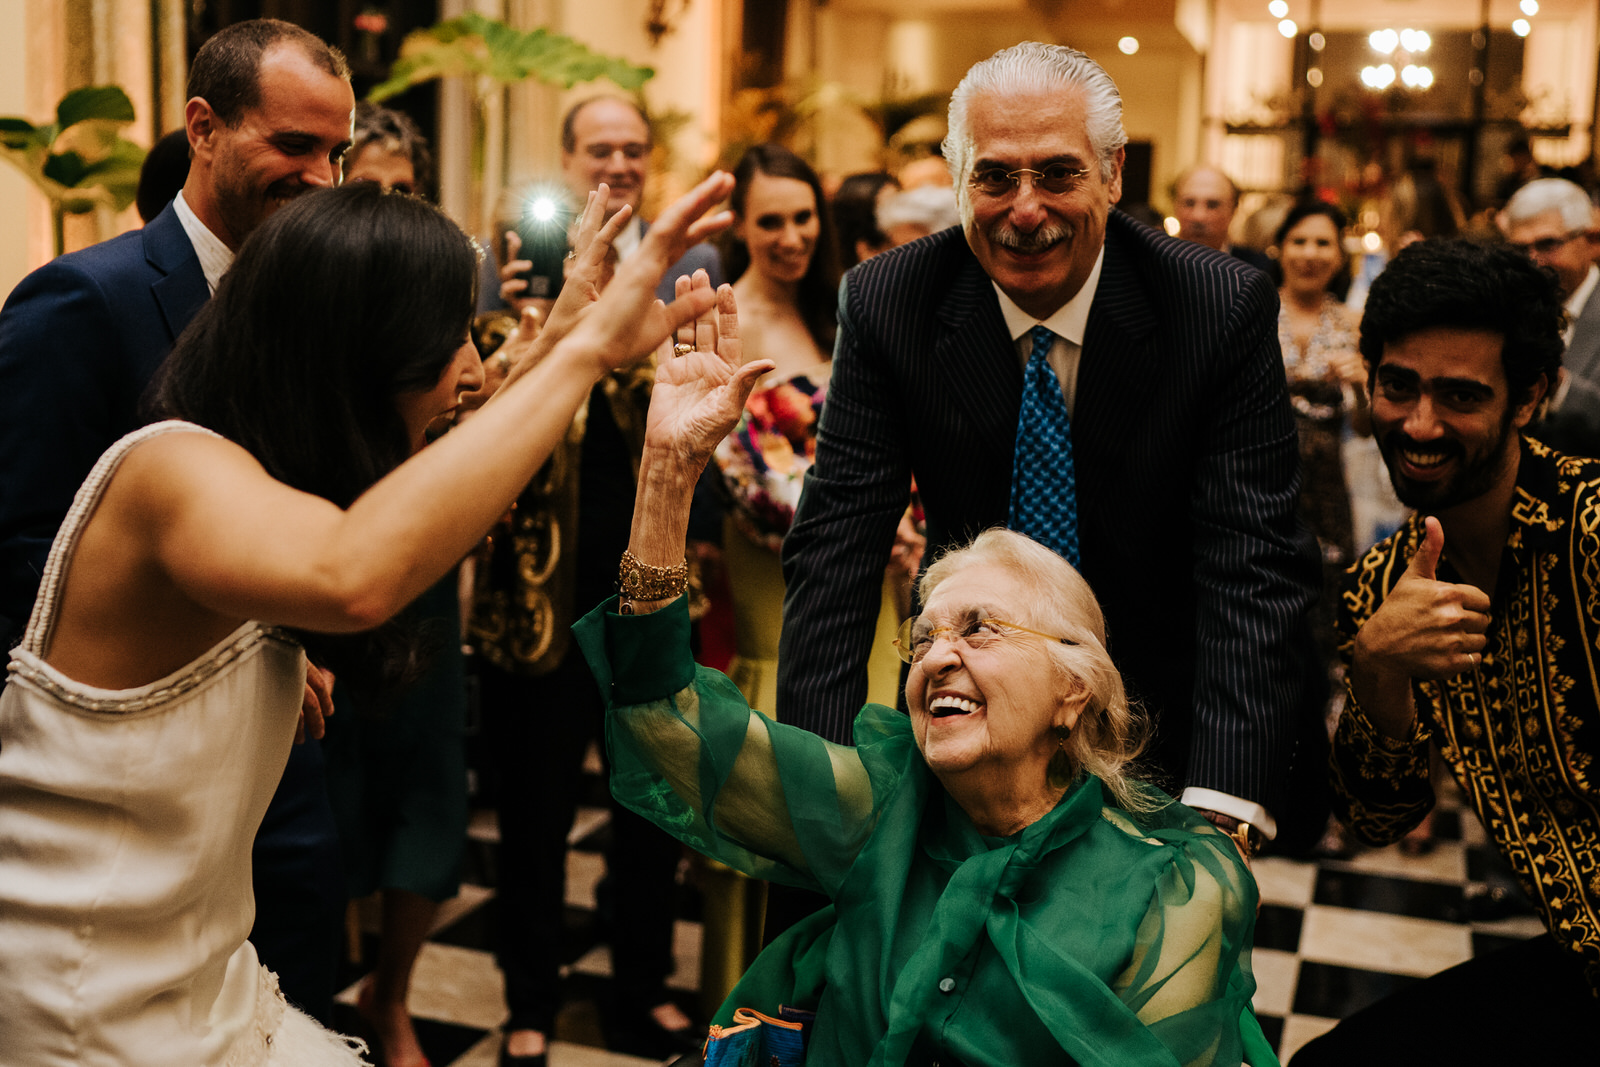 Bride's grandmother is on the dancefloor in her wheelchair and smiling as everyone encourages her and bride smiles at her